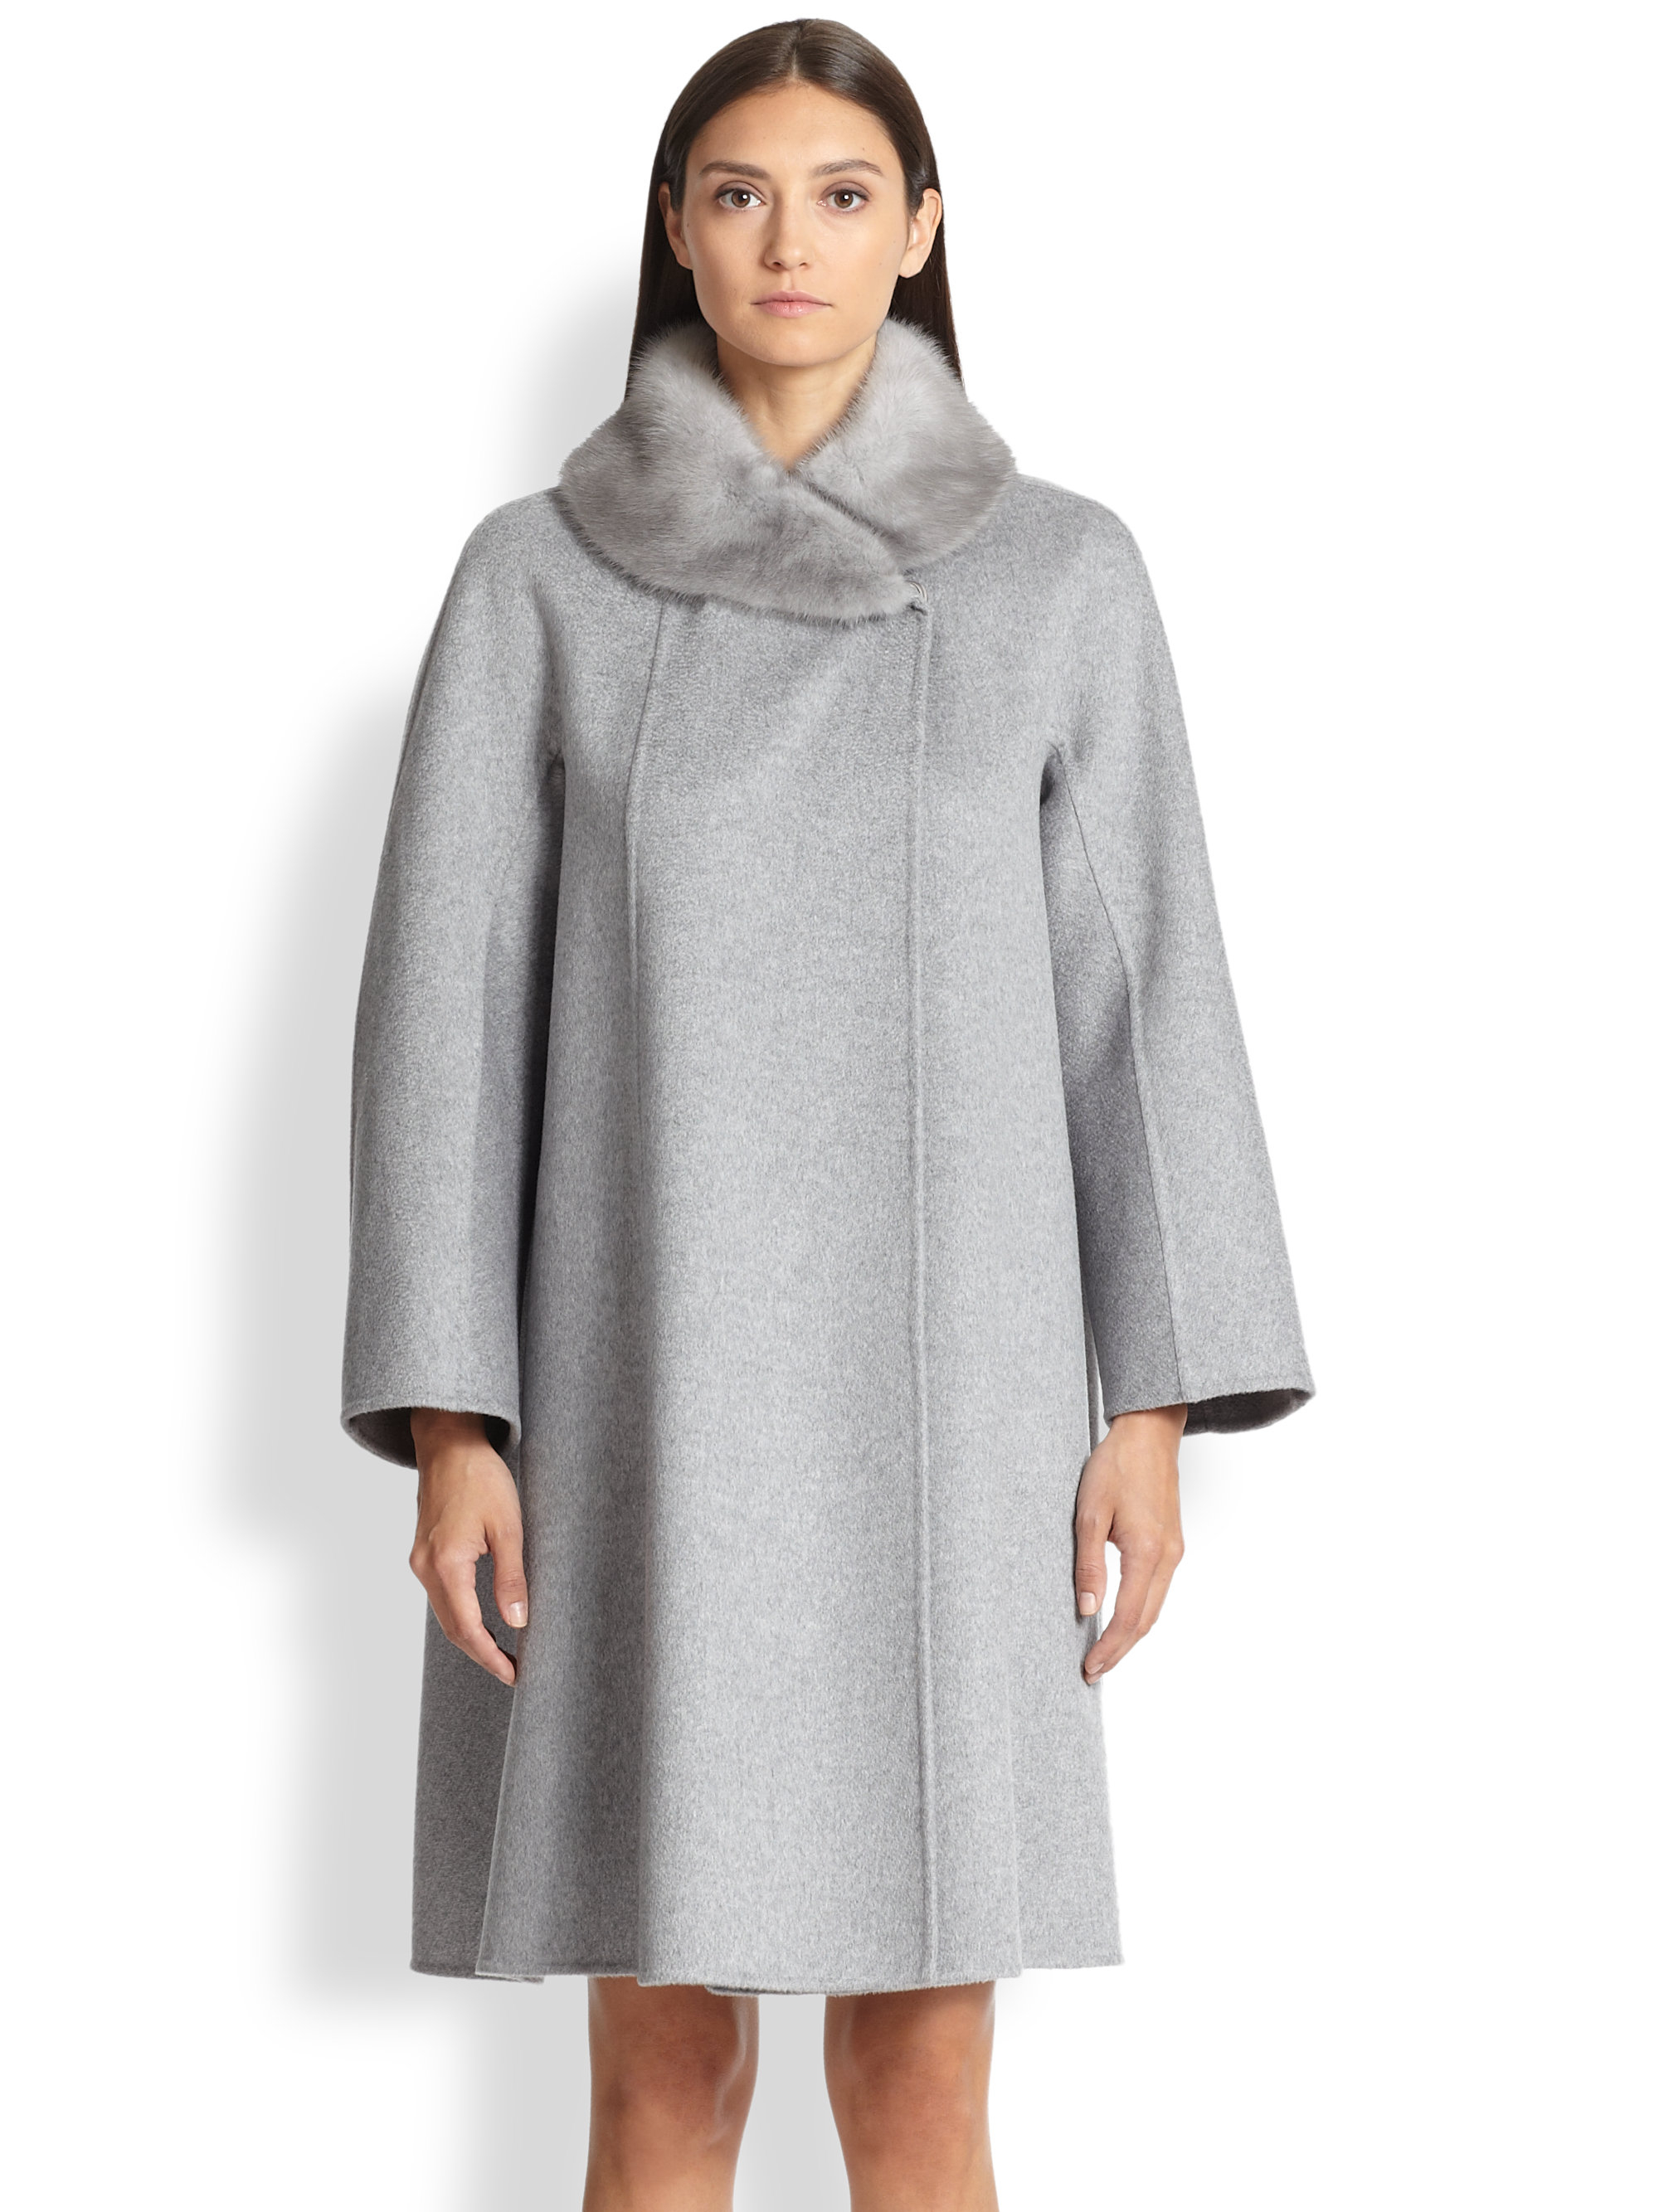 Max mara Fur-Collar Cashmere Coat in Gray | Lyst